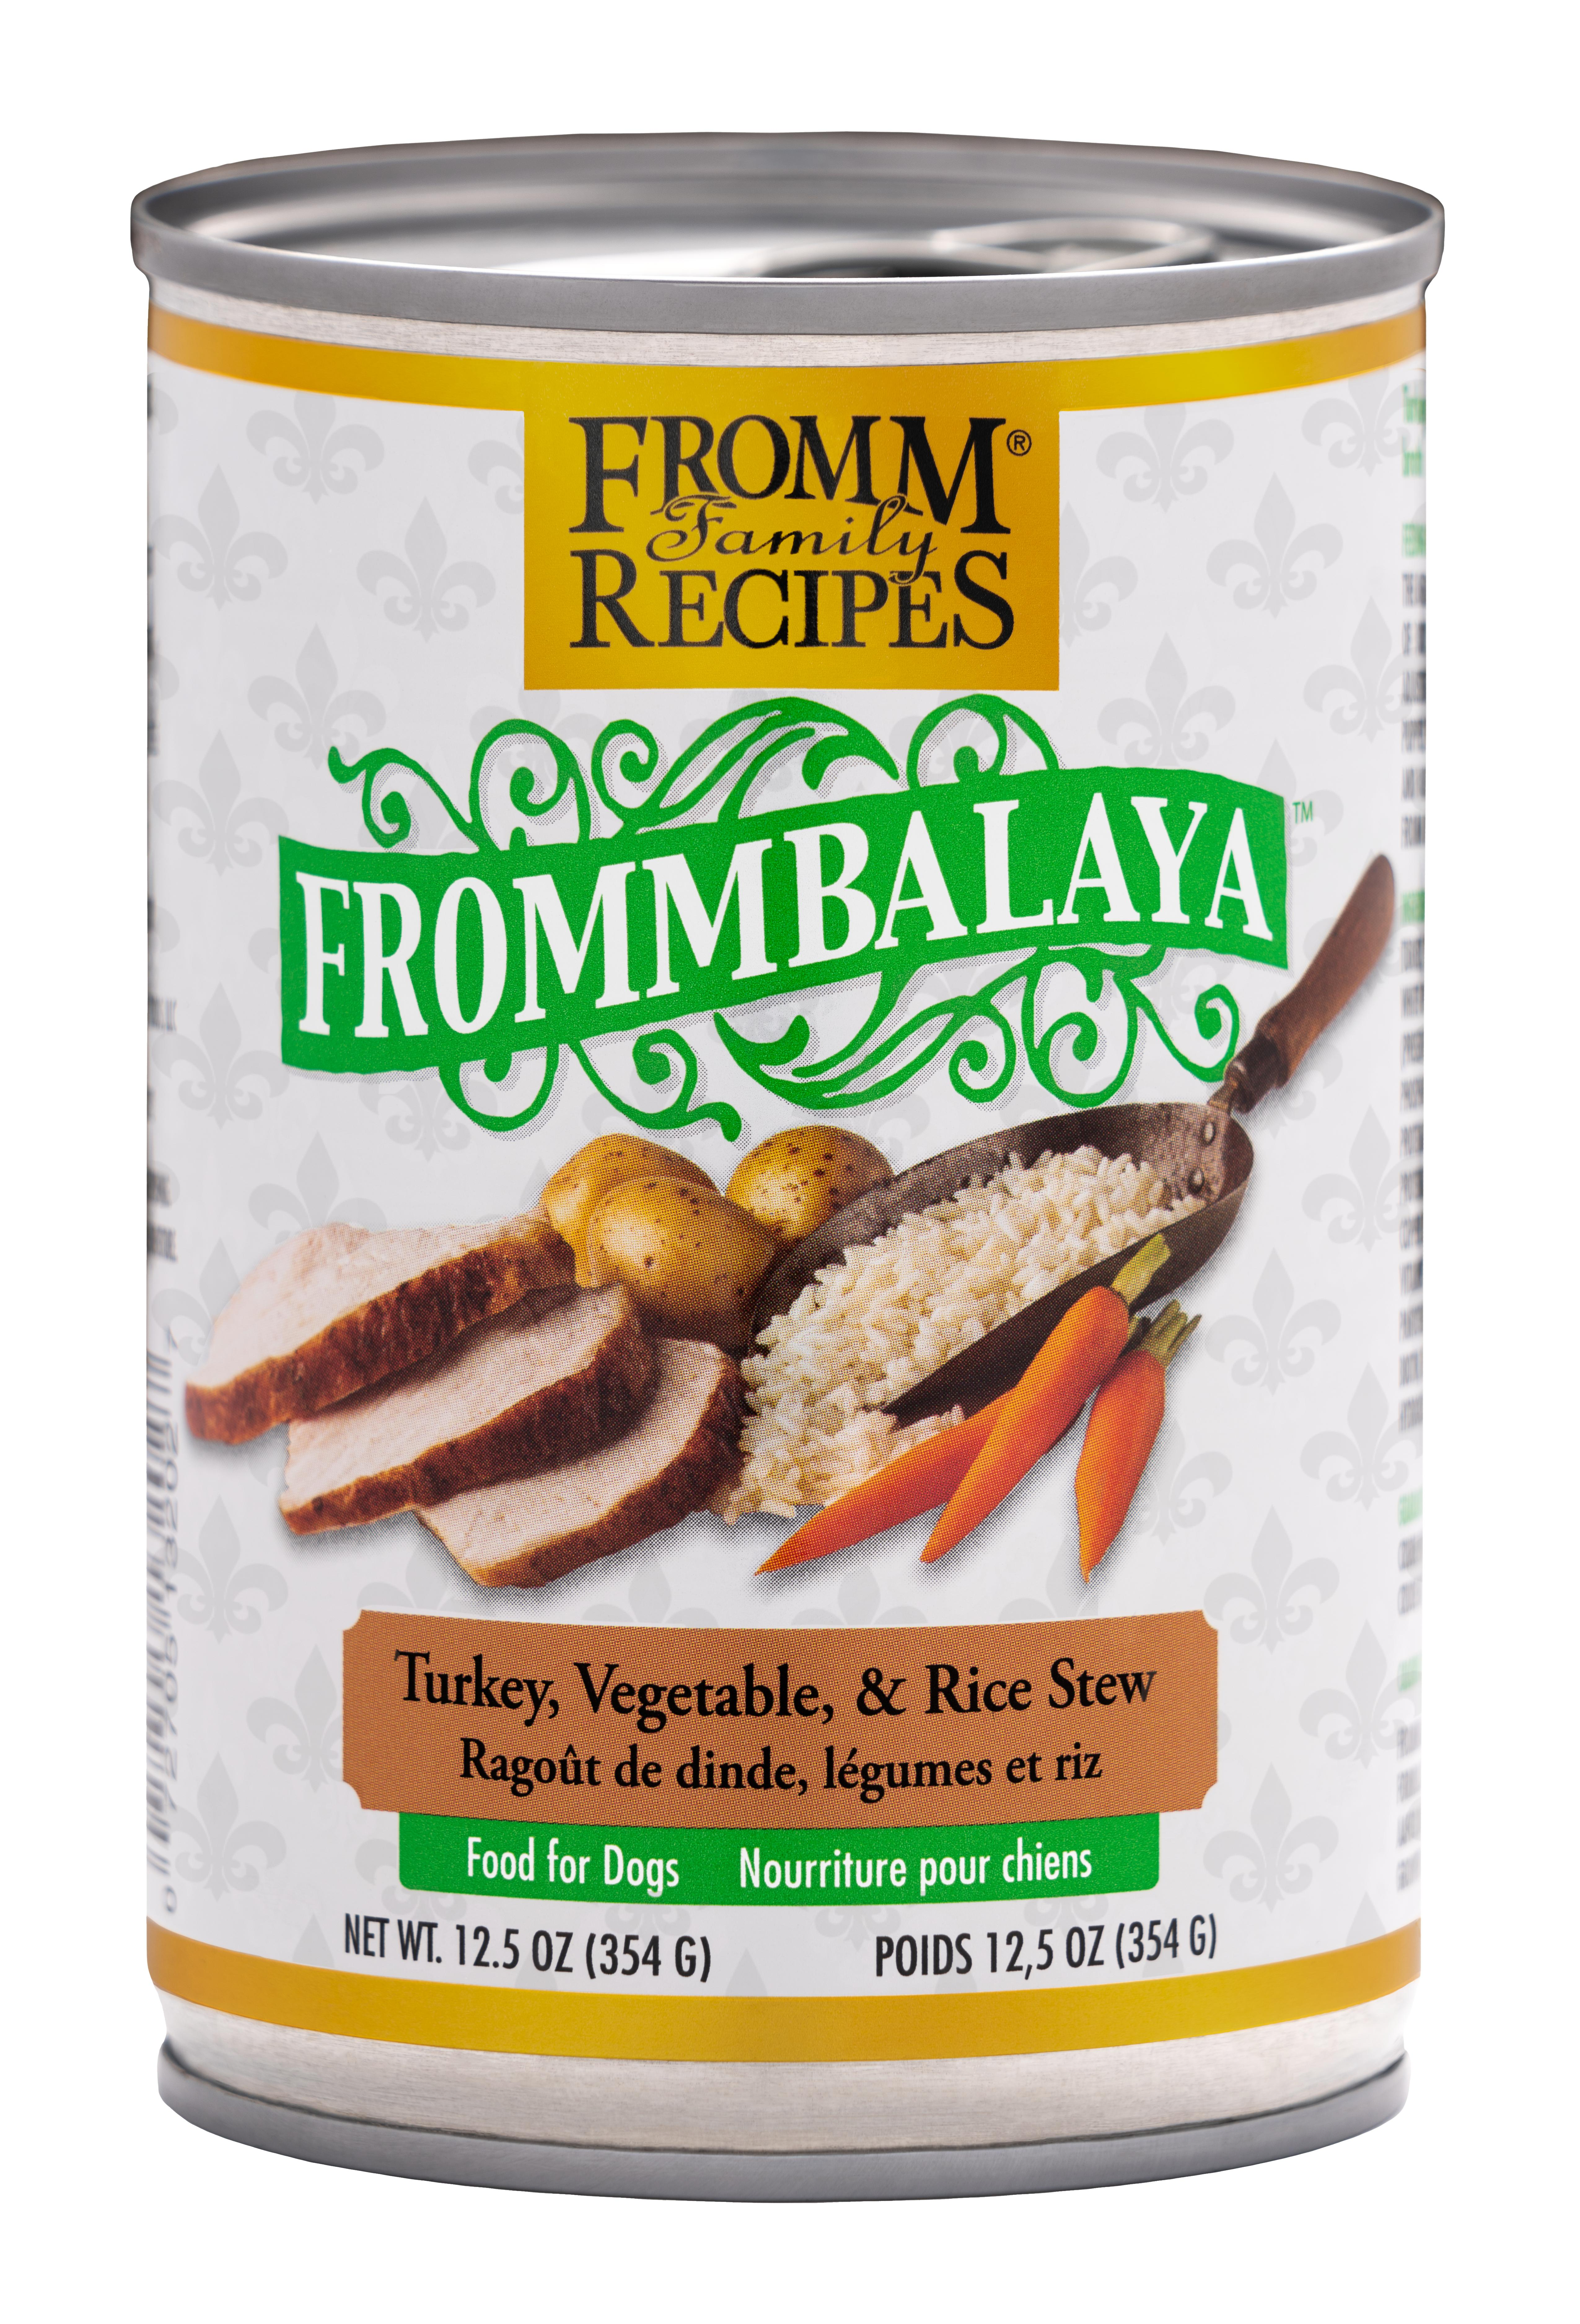 Fromm Family Recipes Frommbalaya Turkey, Vegetable & Rice Stew Canned Dog Food, 12.5-oz